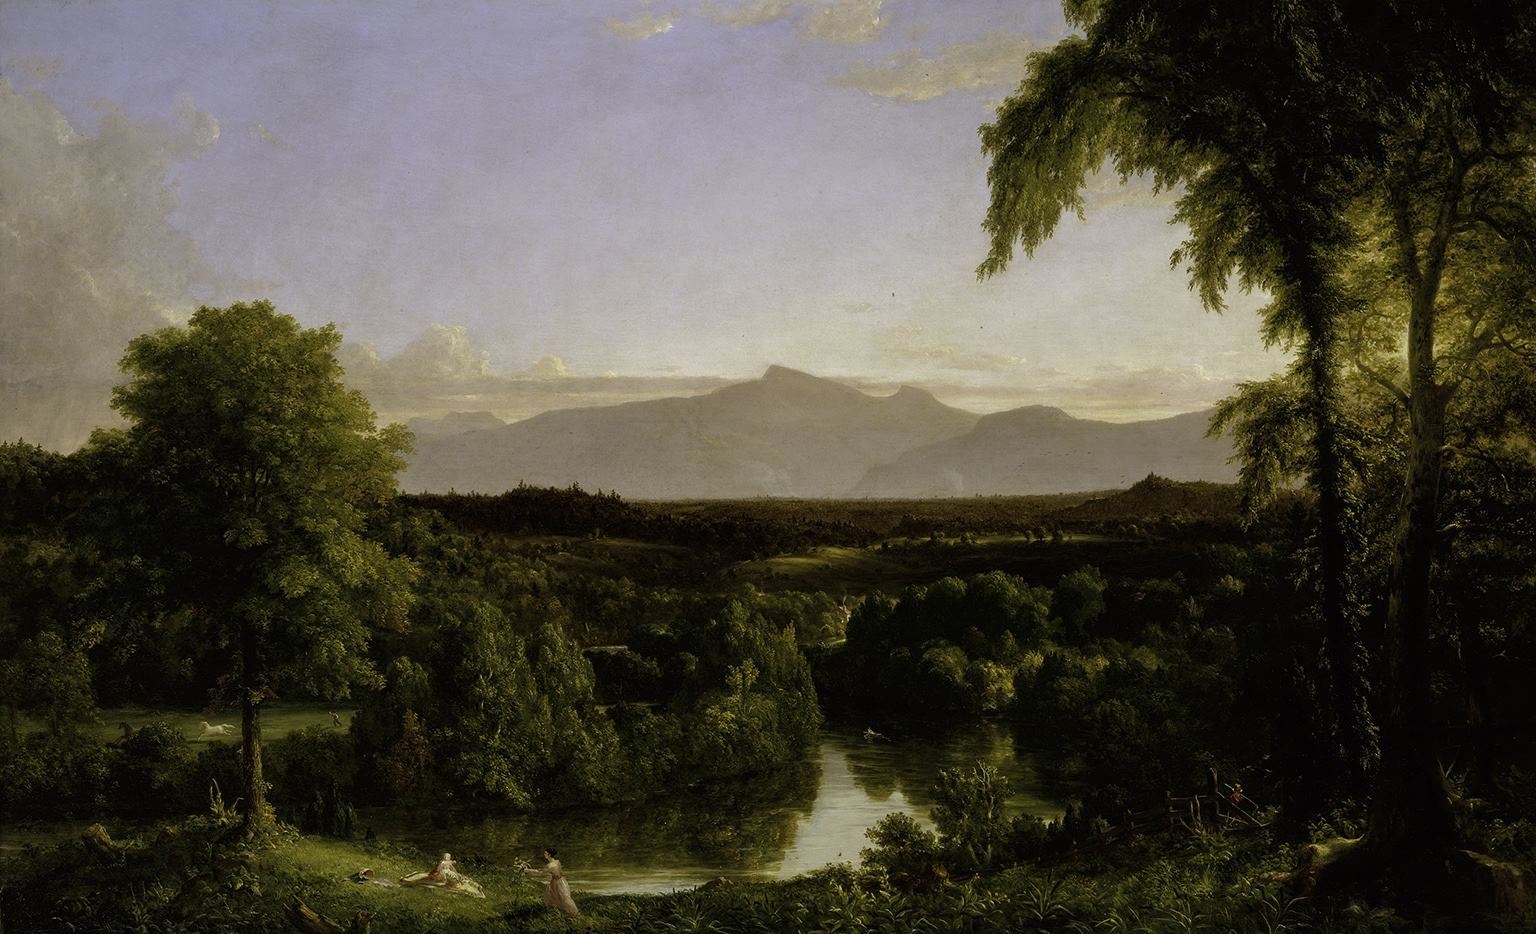 Thomas Cole, View on the Catskill - Early Autumn, 1836-37